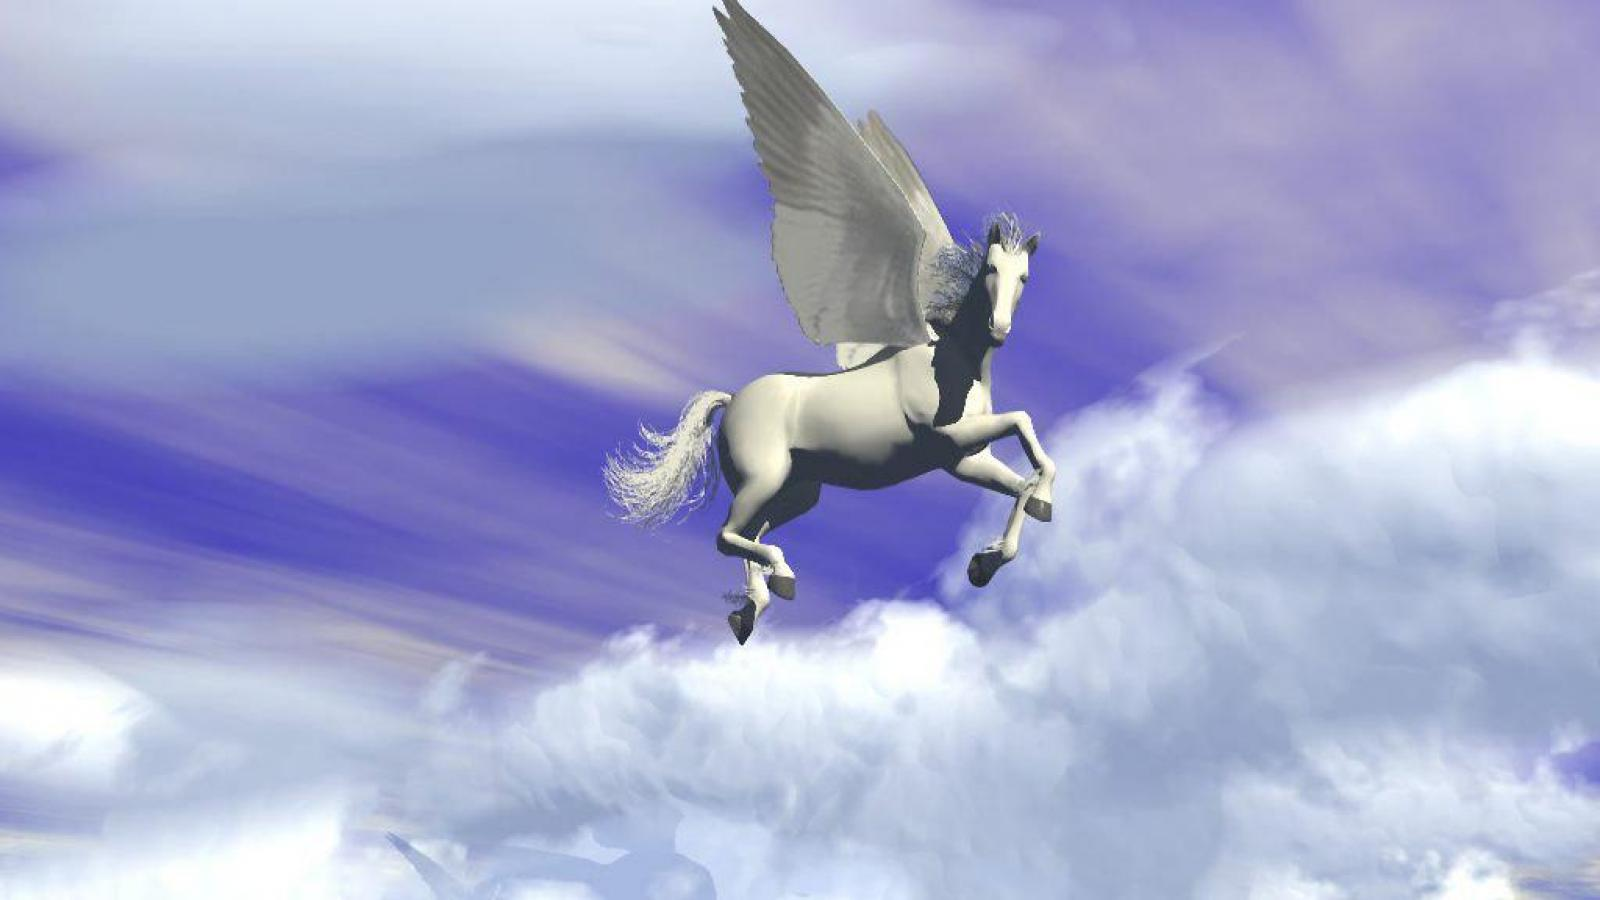 unicorn   154695   High Quality and Resolution Wallpapers on 1600x900